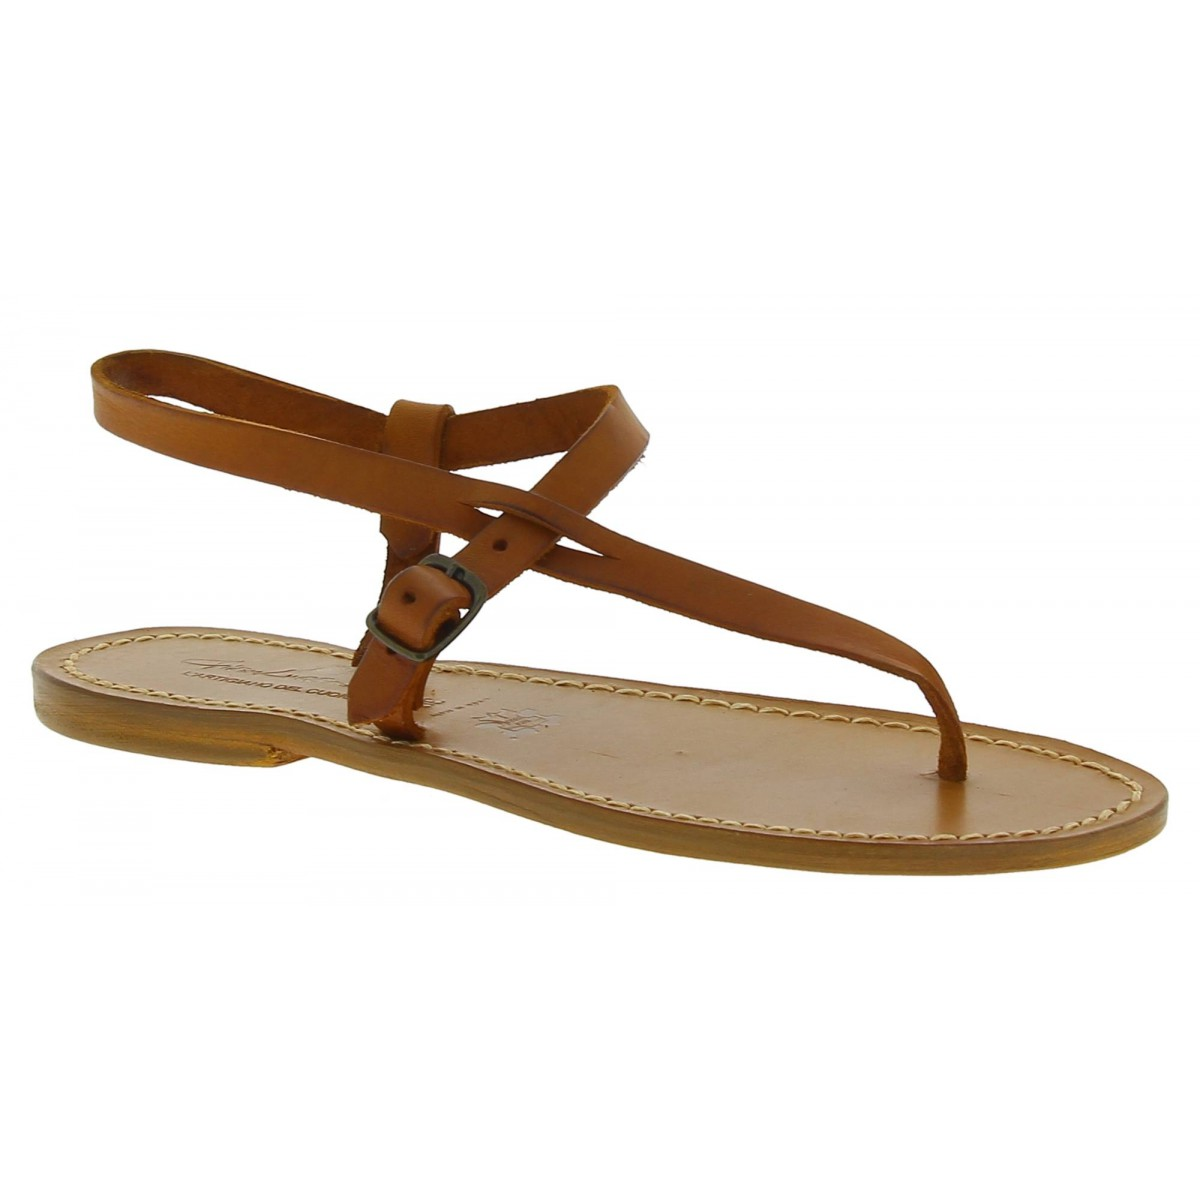 cf3c02c6038 Handmade leather thong sandals for women in tan color. Loading zoom